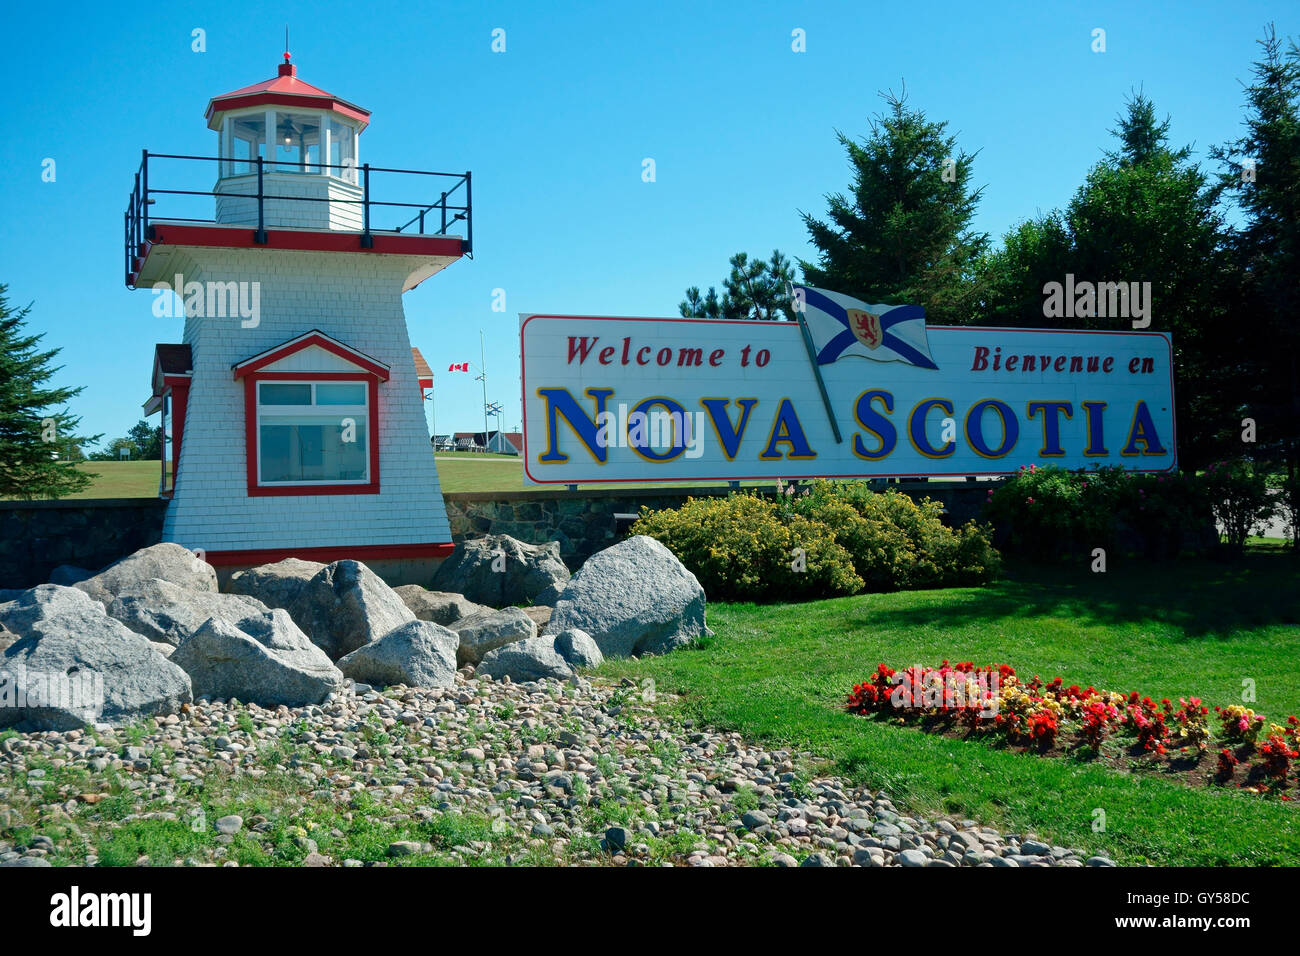 The Nova Scotia Canada border crossing at New Brunswick showing a lighthouse and welcoming sign at Amherst, N.S. - Stock Image